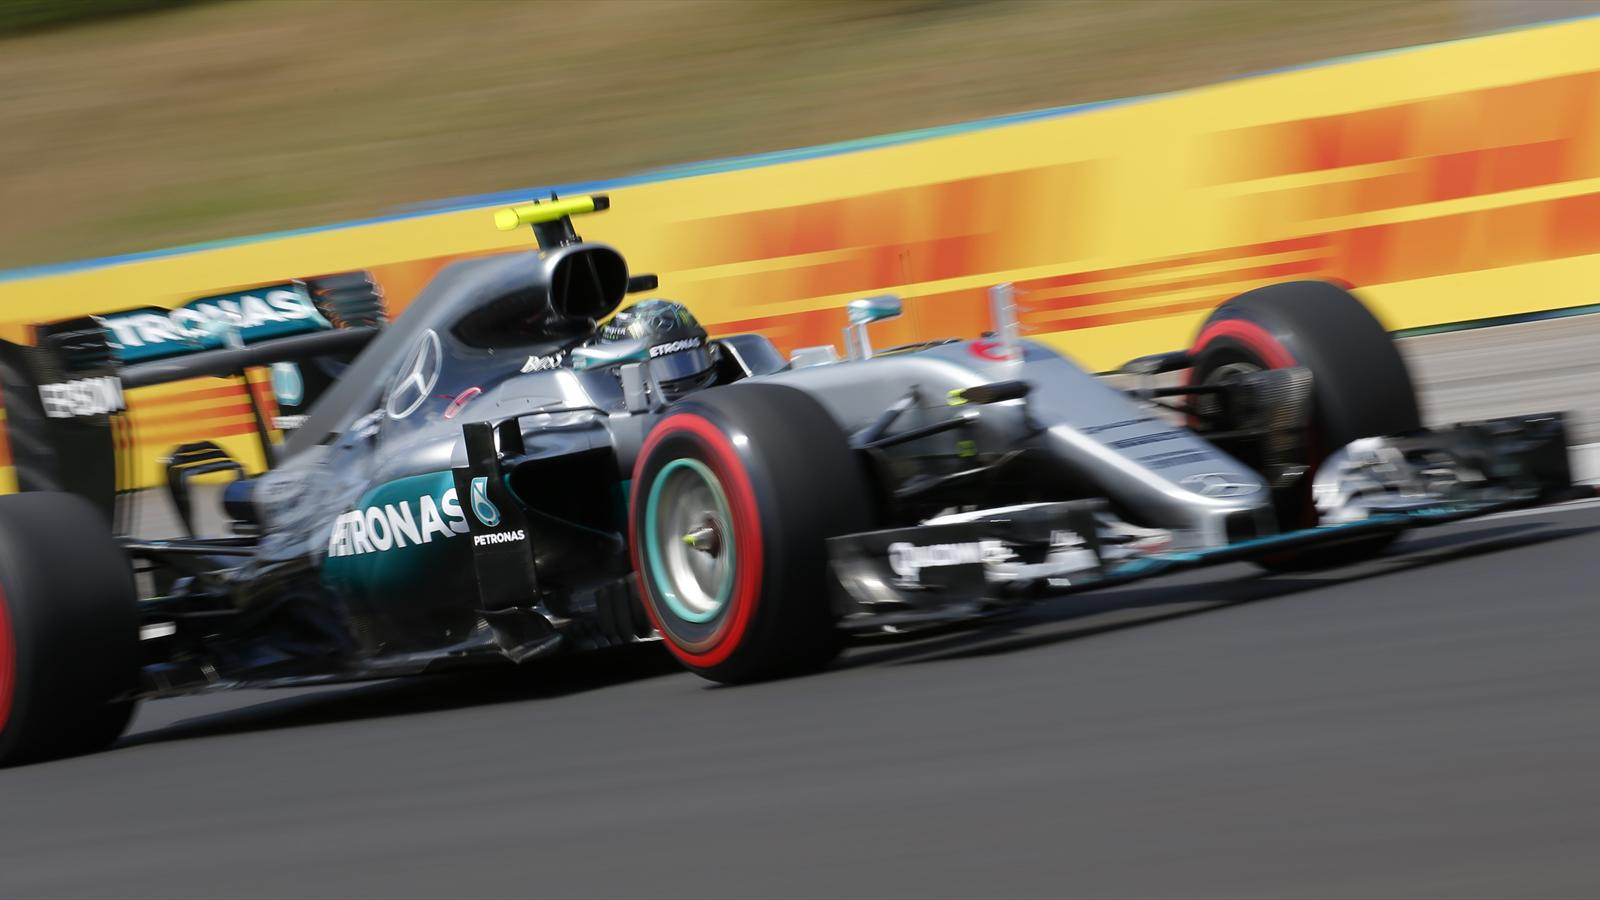 Nico Rosberg Fastest In Practice As Lewis Hamilton Crashes Out Vettel Expects Indian Circuit To Be Secondfastest F1 Track Hungarian Grand Prix 2016 Formula 1 Eurosport